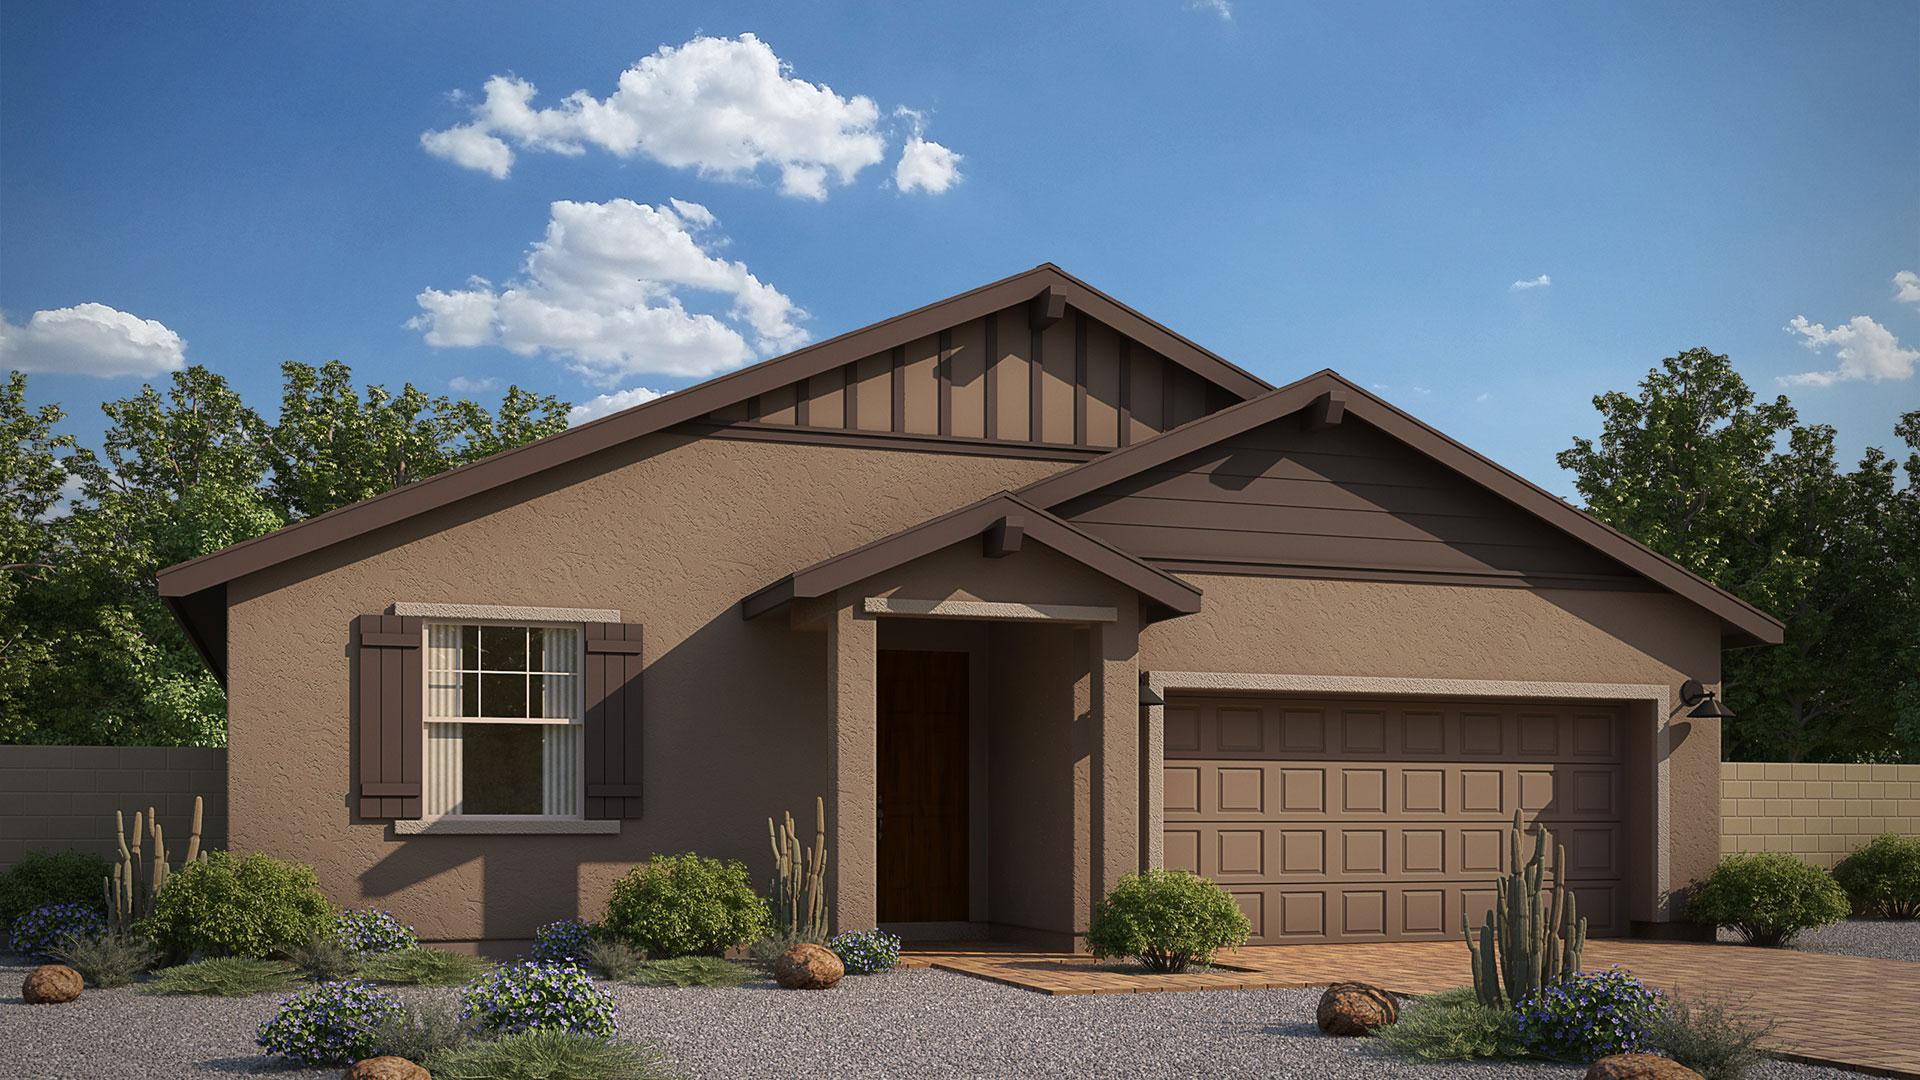 Exterior featured in the Sunrise II  By Mandalay Homes in Prescott, AZ